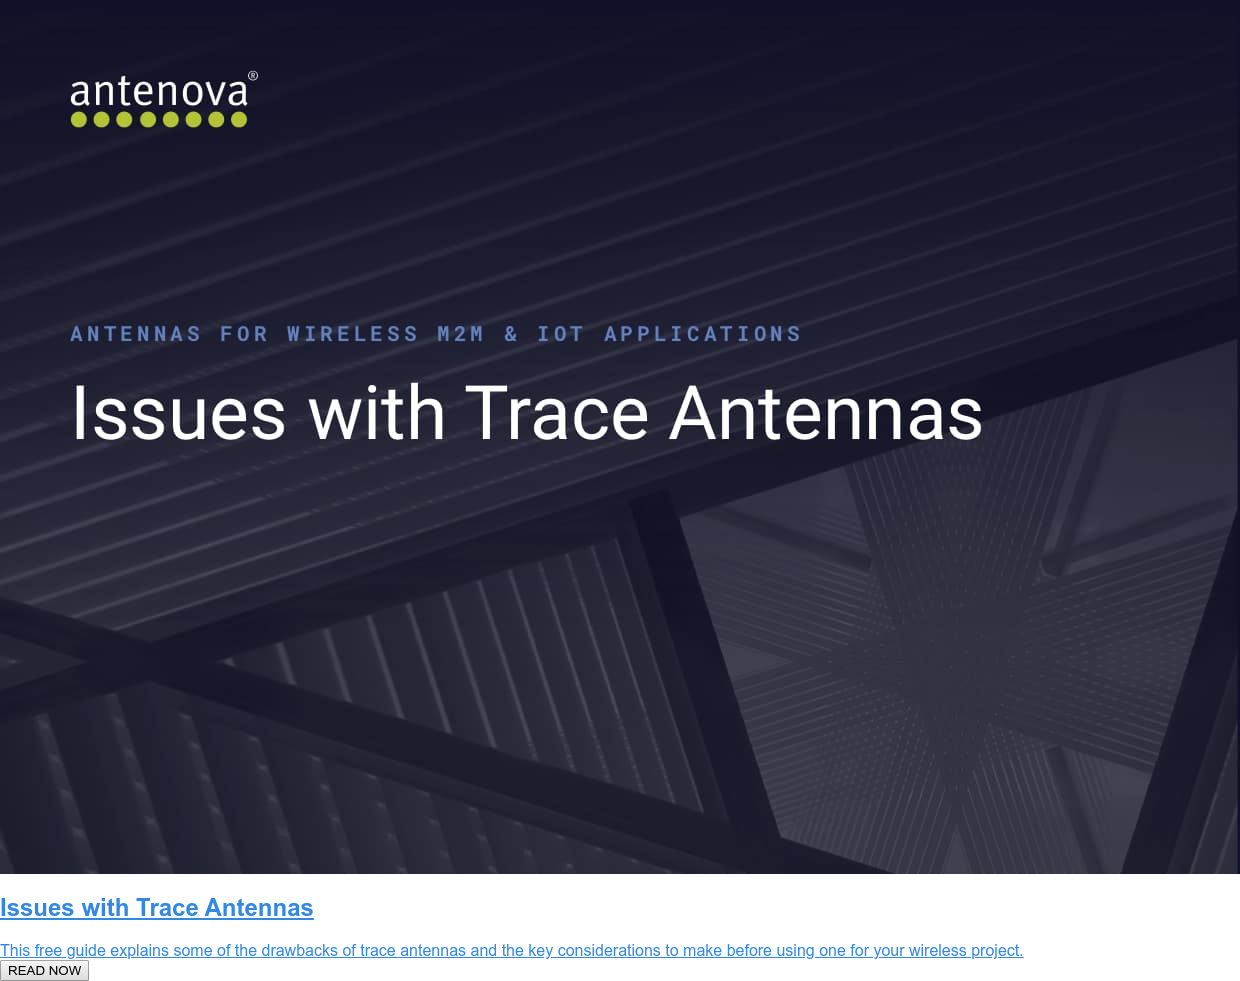 Issues with Trace Antennas  This free guide explains some of the drawbacks of trace antennas and the key  considerations to make before using one for your wireless project.  READ NOW